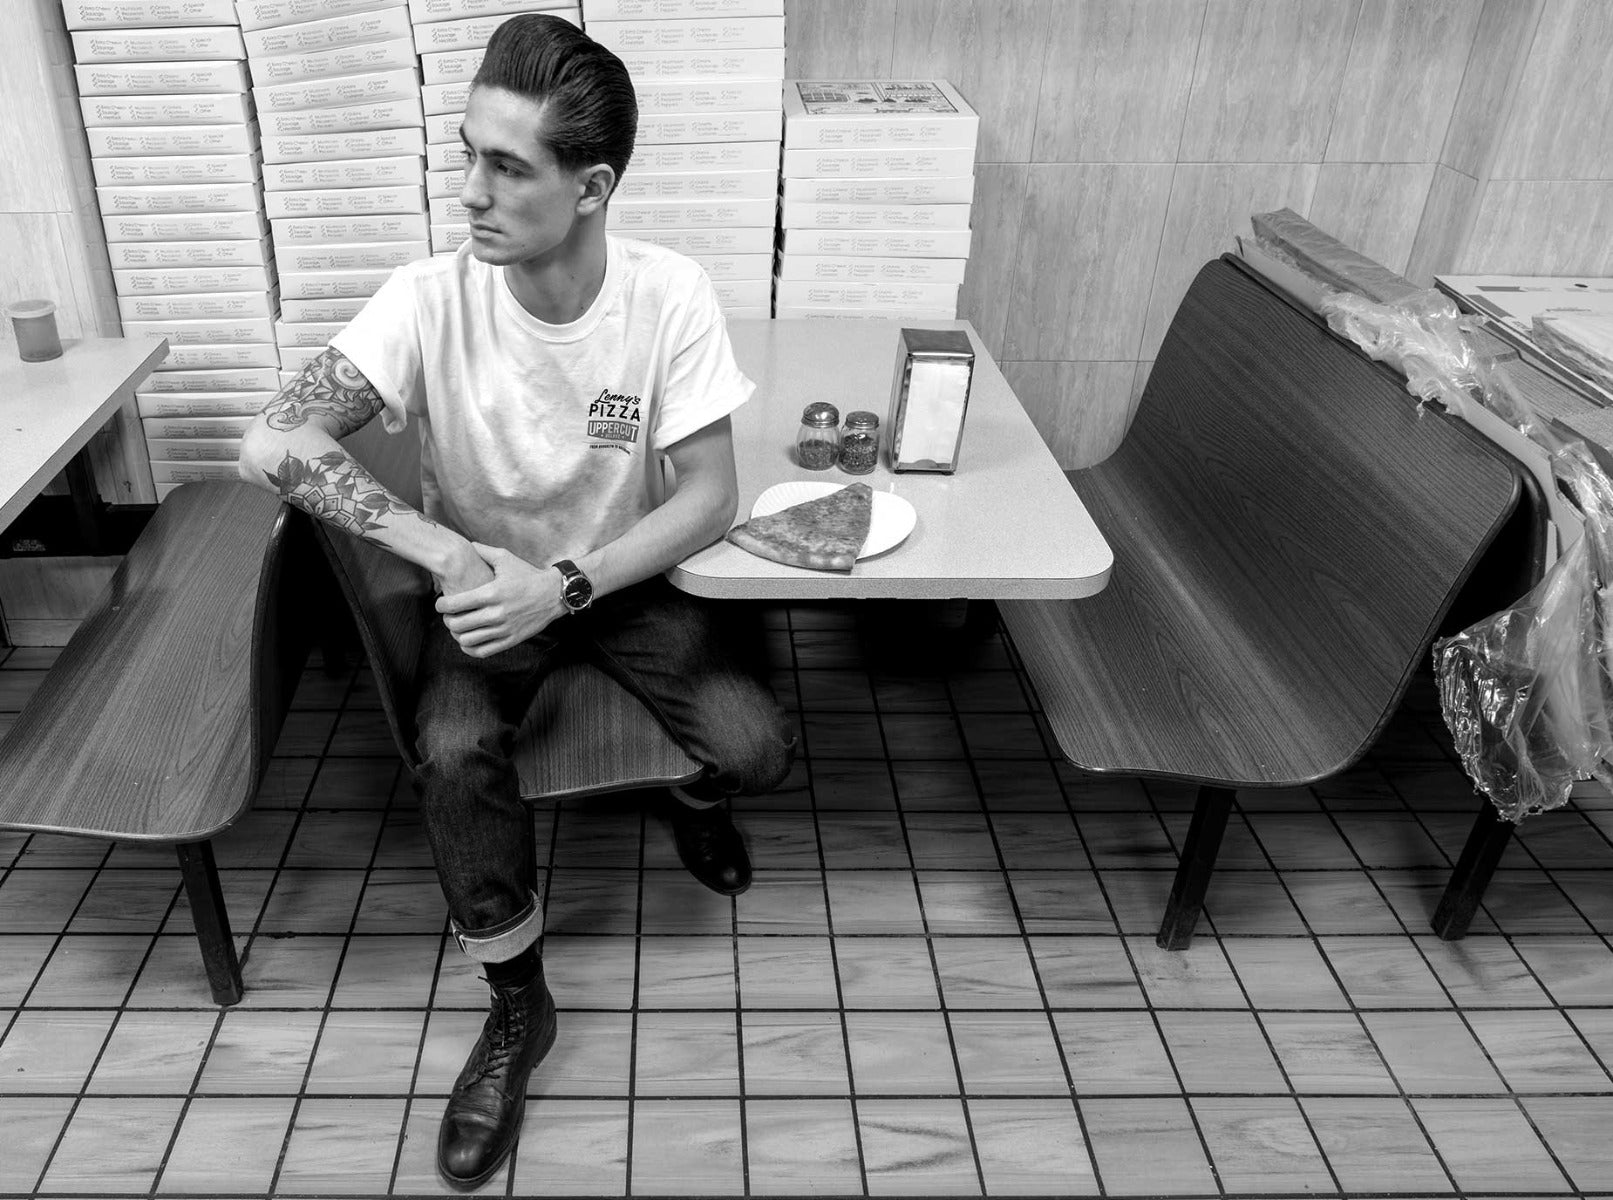 Man sitting at diner table